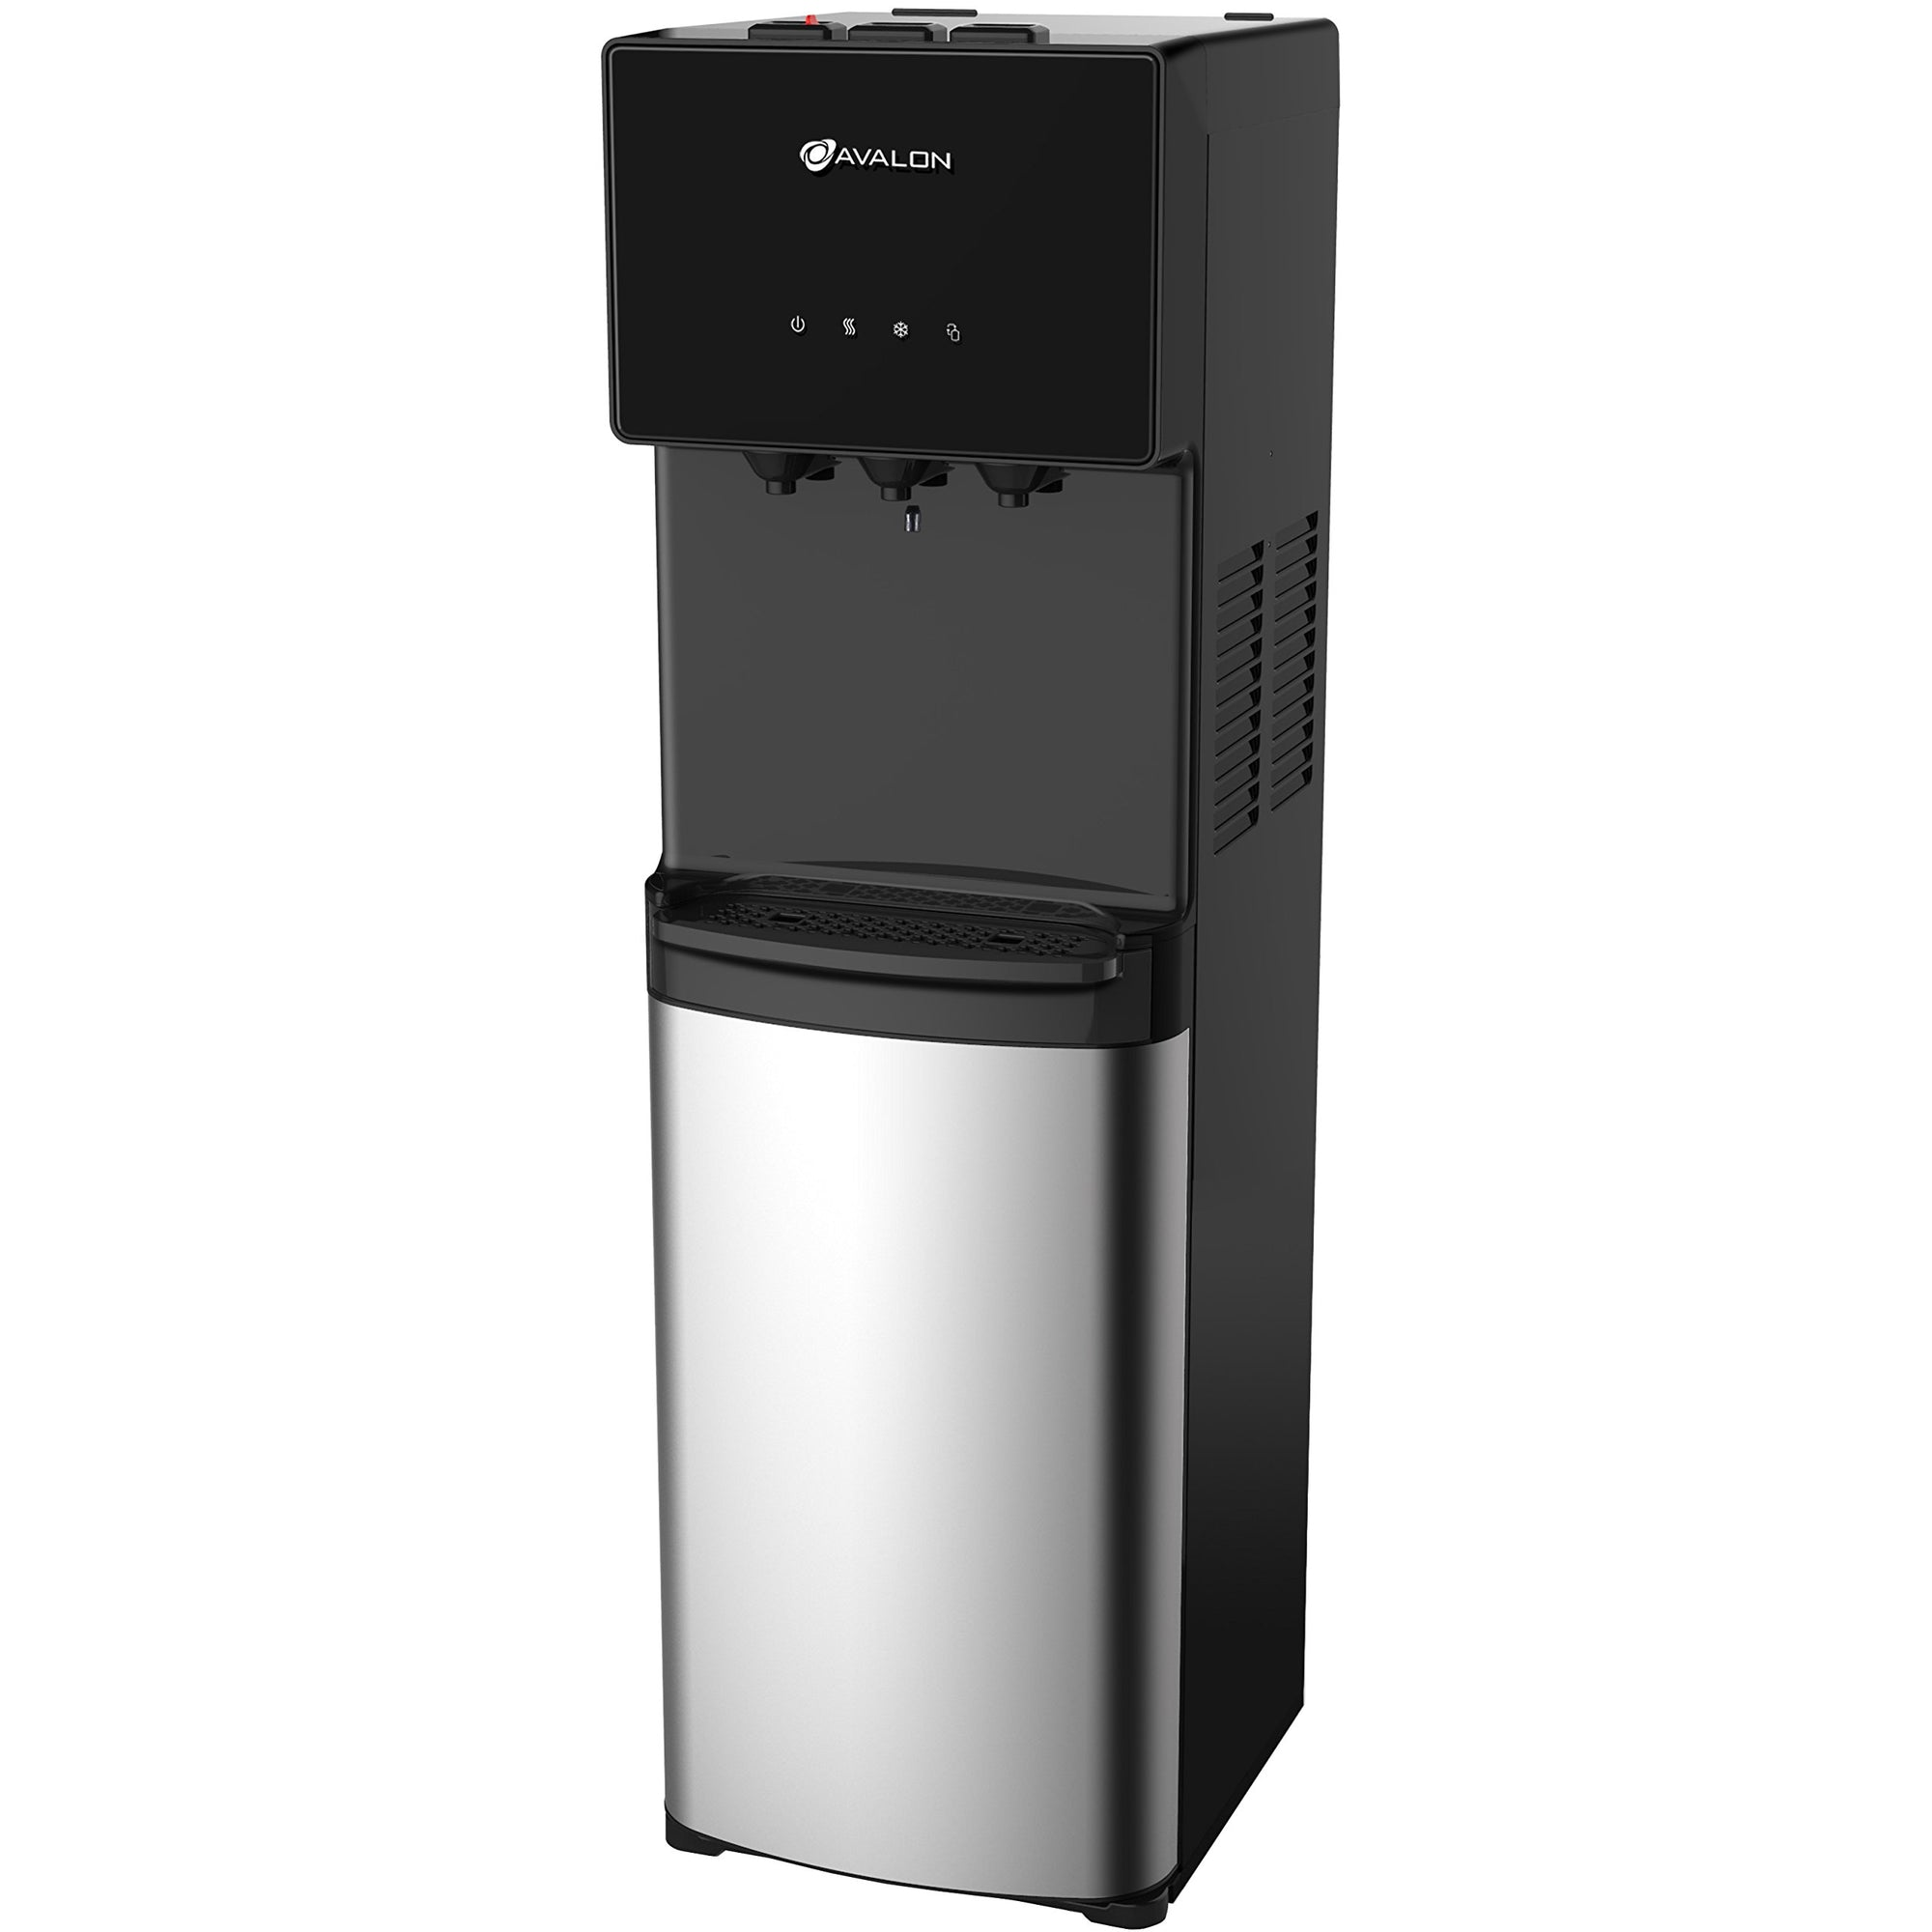 Avalon Water Dispenser - Bottom Loading 3 or 5 Gallon Bottle - Stainless Steel & Black - A4BLWTRCLR